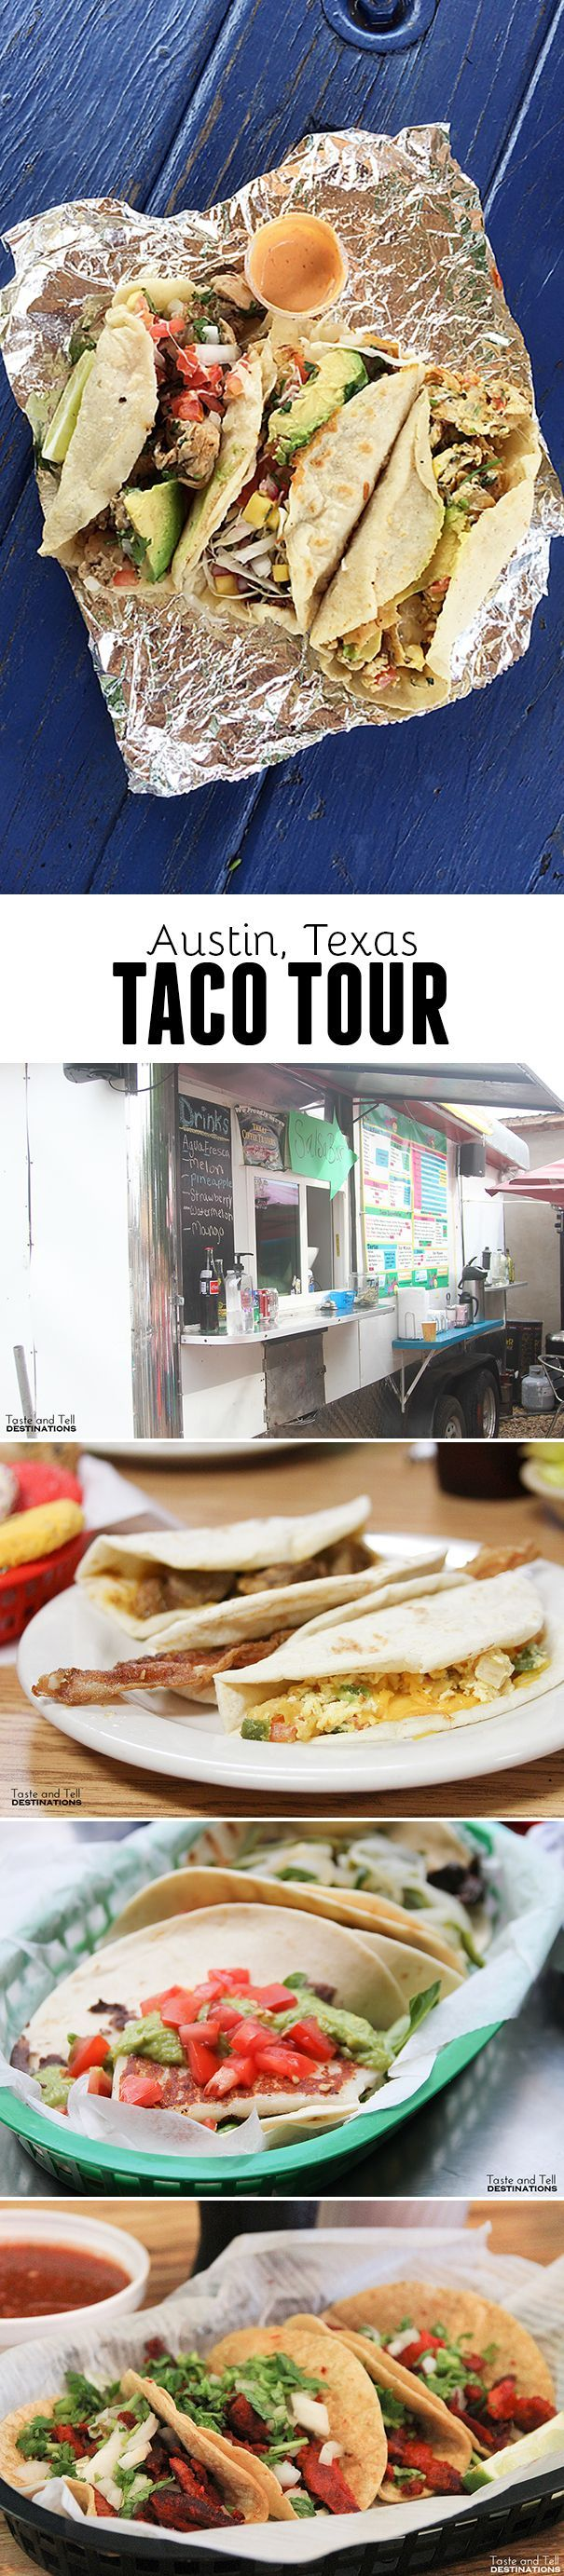 Taco Tour in Austin, Texas - 4 places to visit for great tacos! Good to keep in mind if I actually end up moving there.